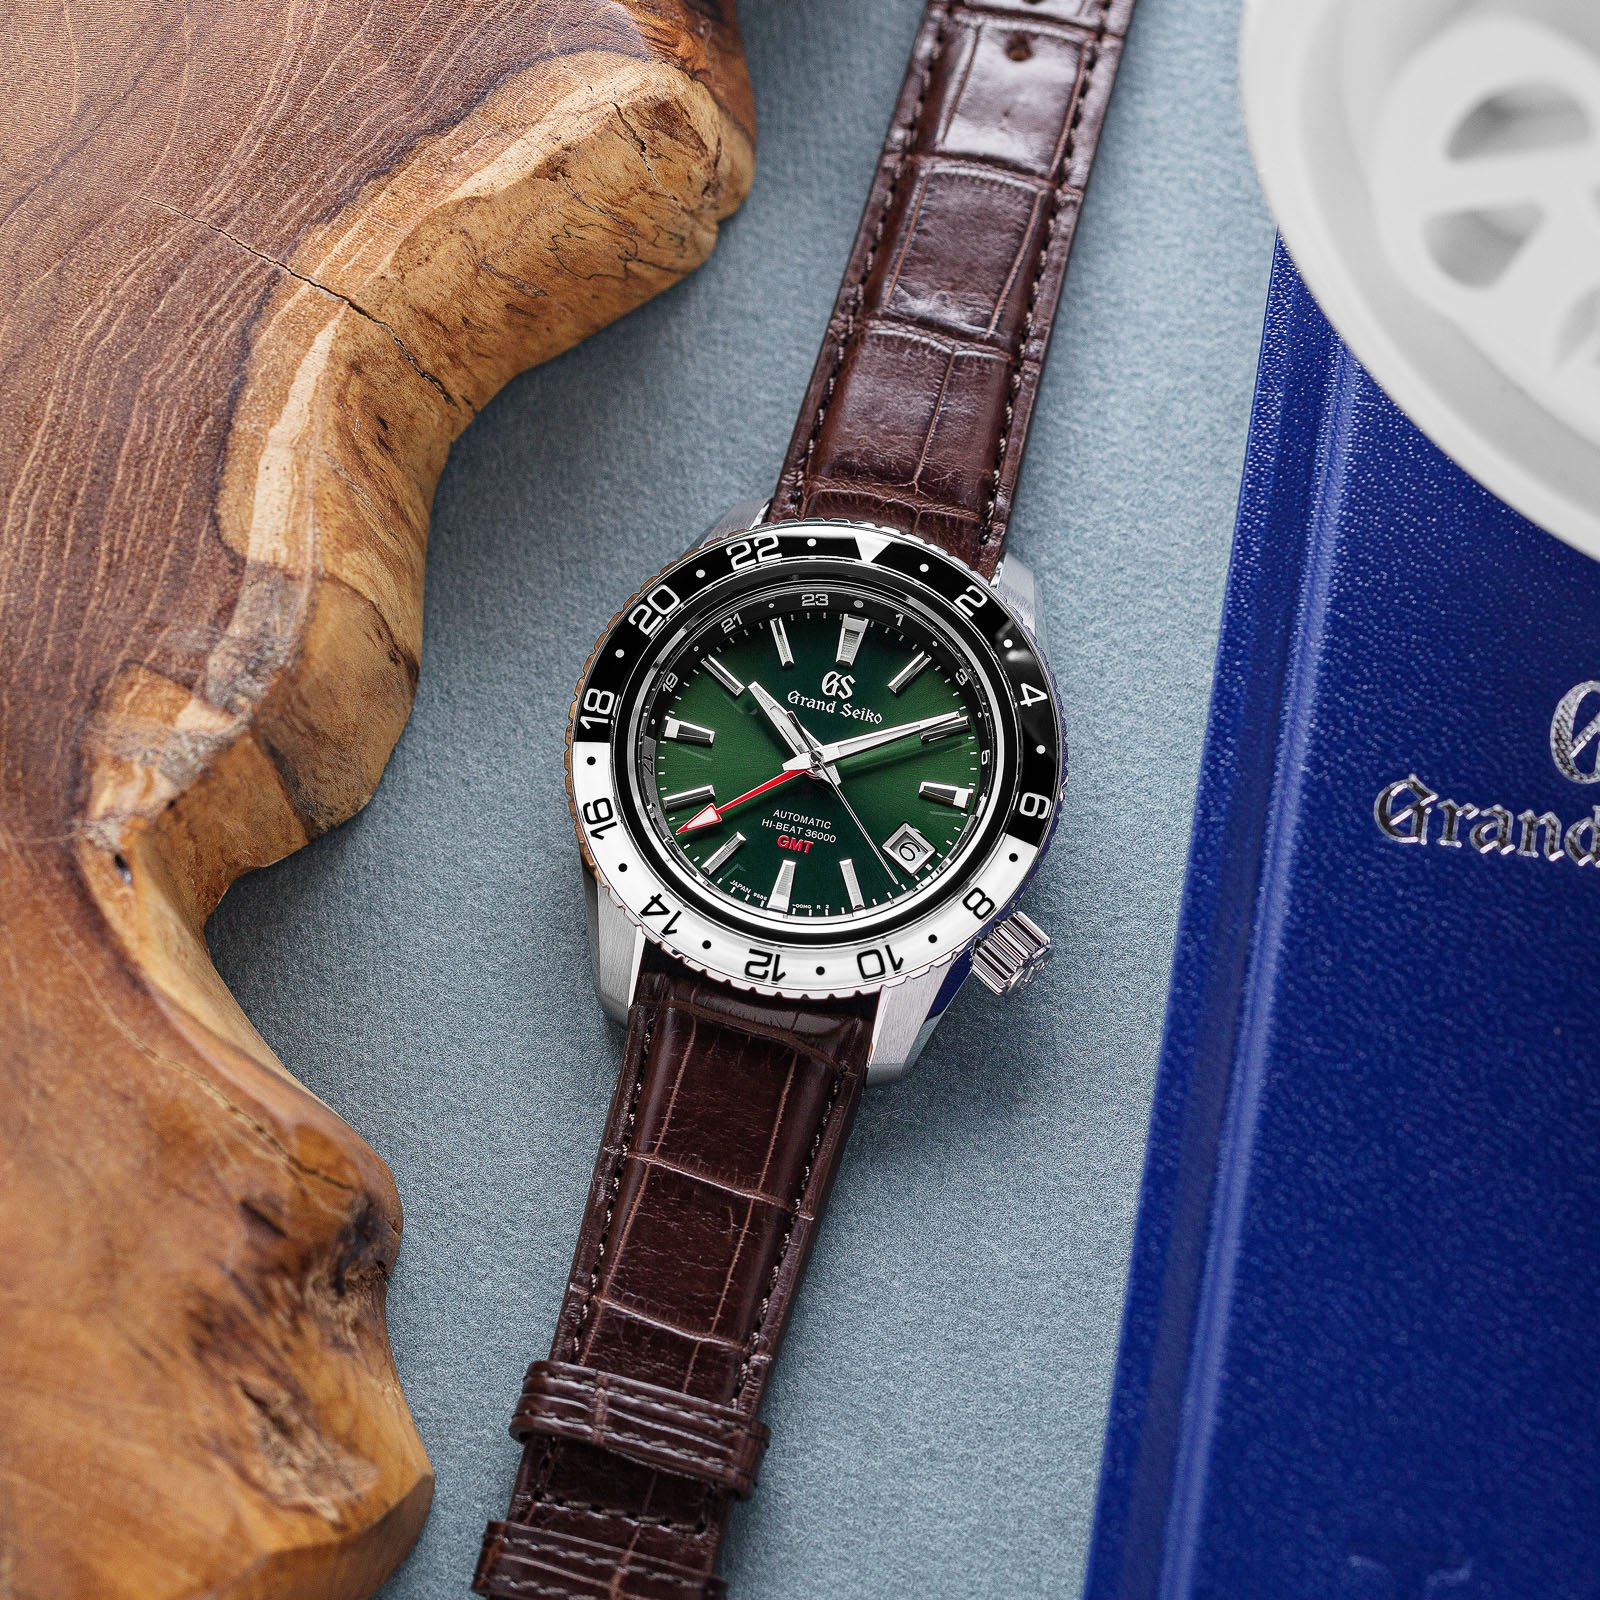 Grand Seiko SBGJ239 - green dial stainless steel wristwatch with a two-tone bezel and leather strap atop a table.